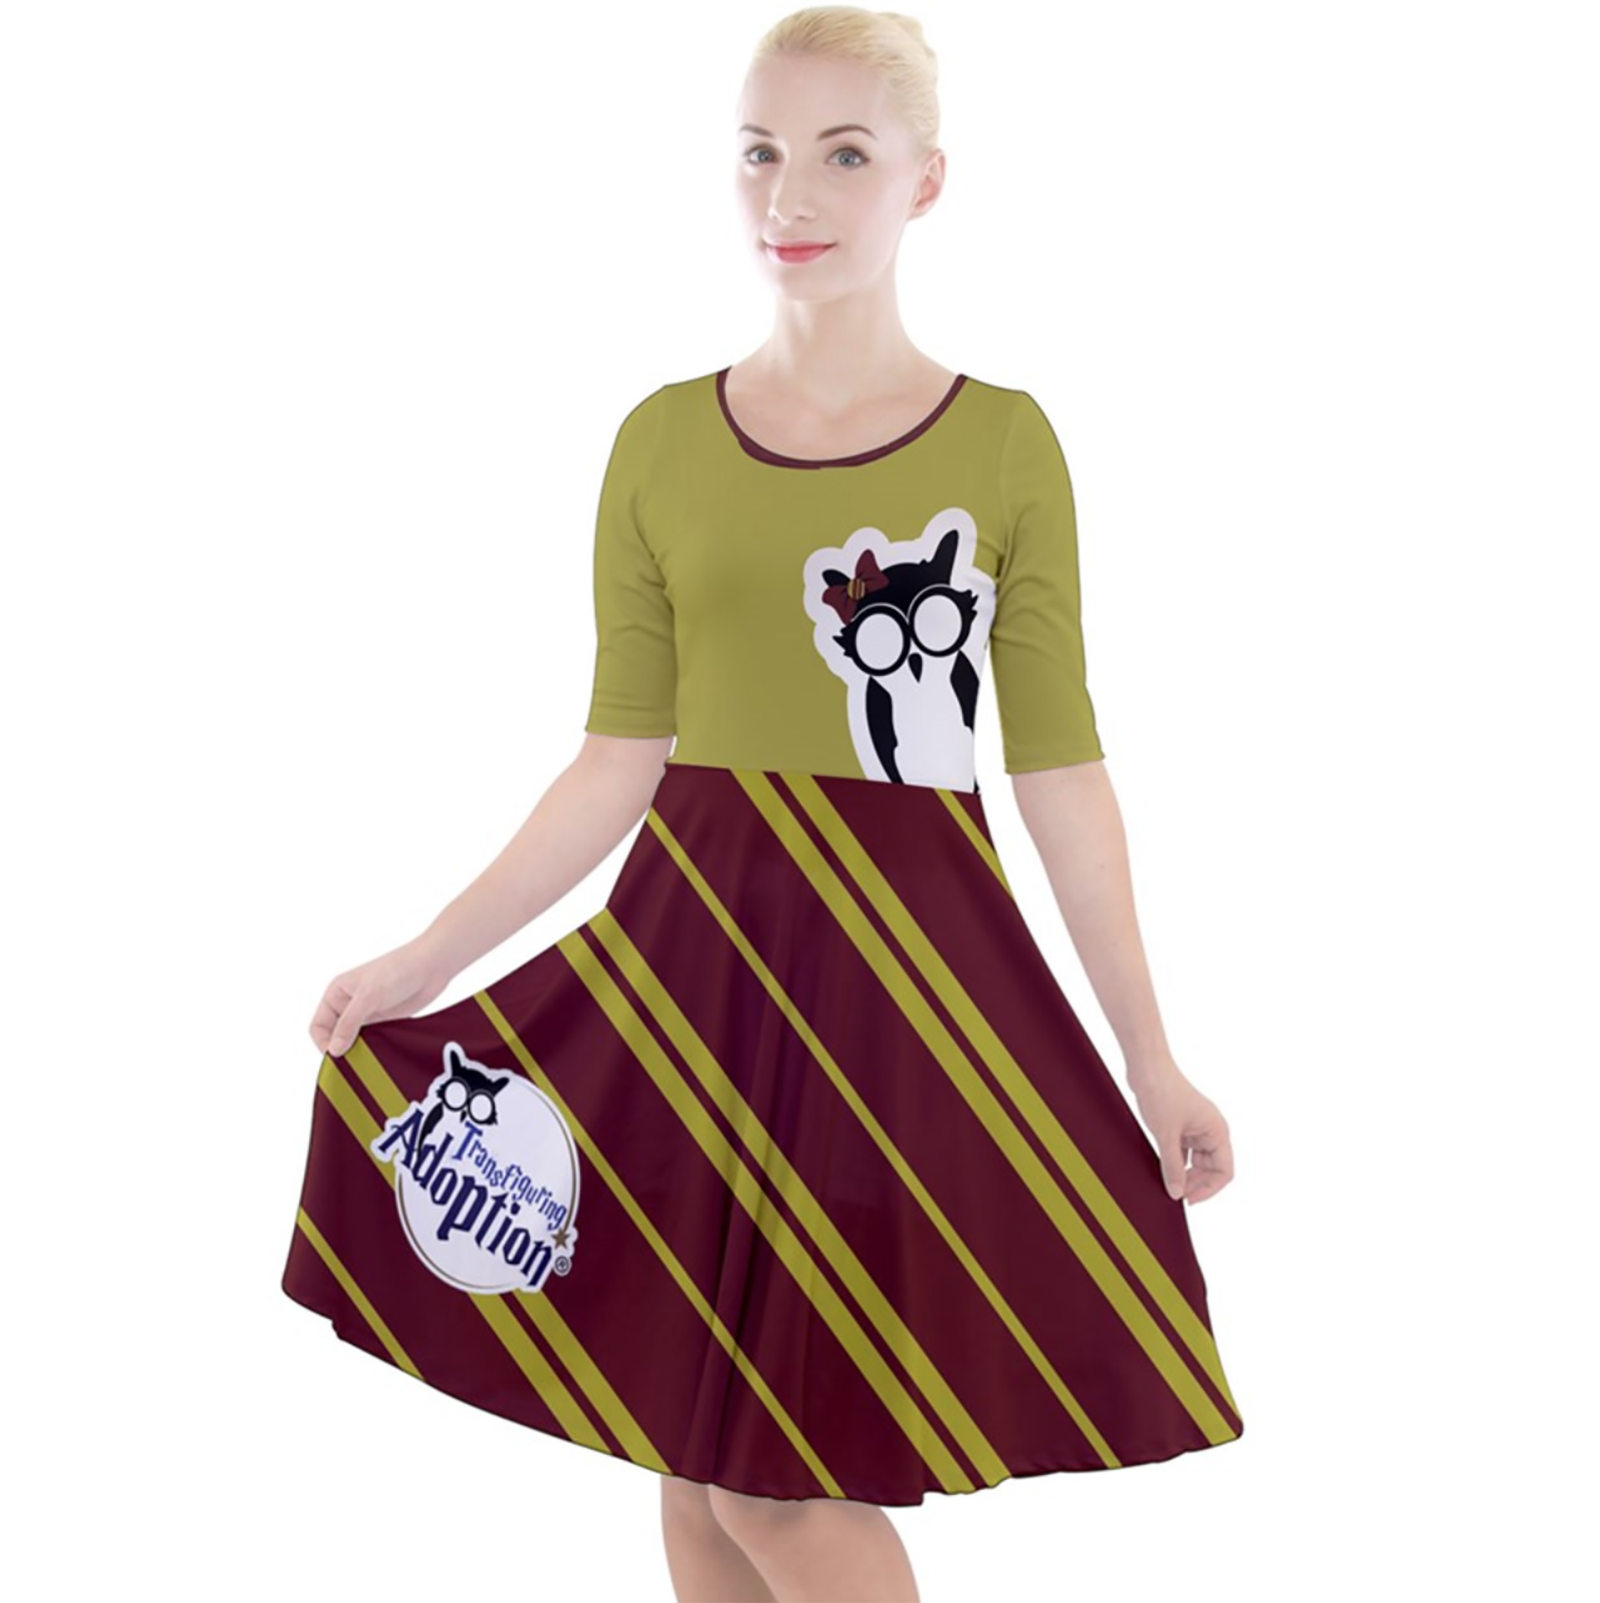 Owl (Red) Striped Dress - Quarter Sleeve A-Line Dress - Inspired by Gryffindor